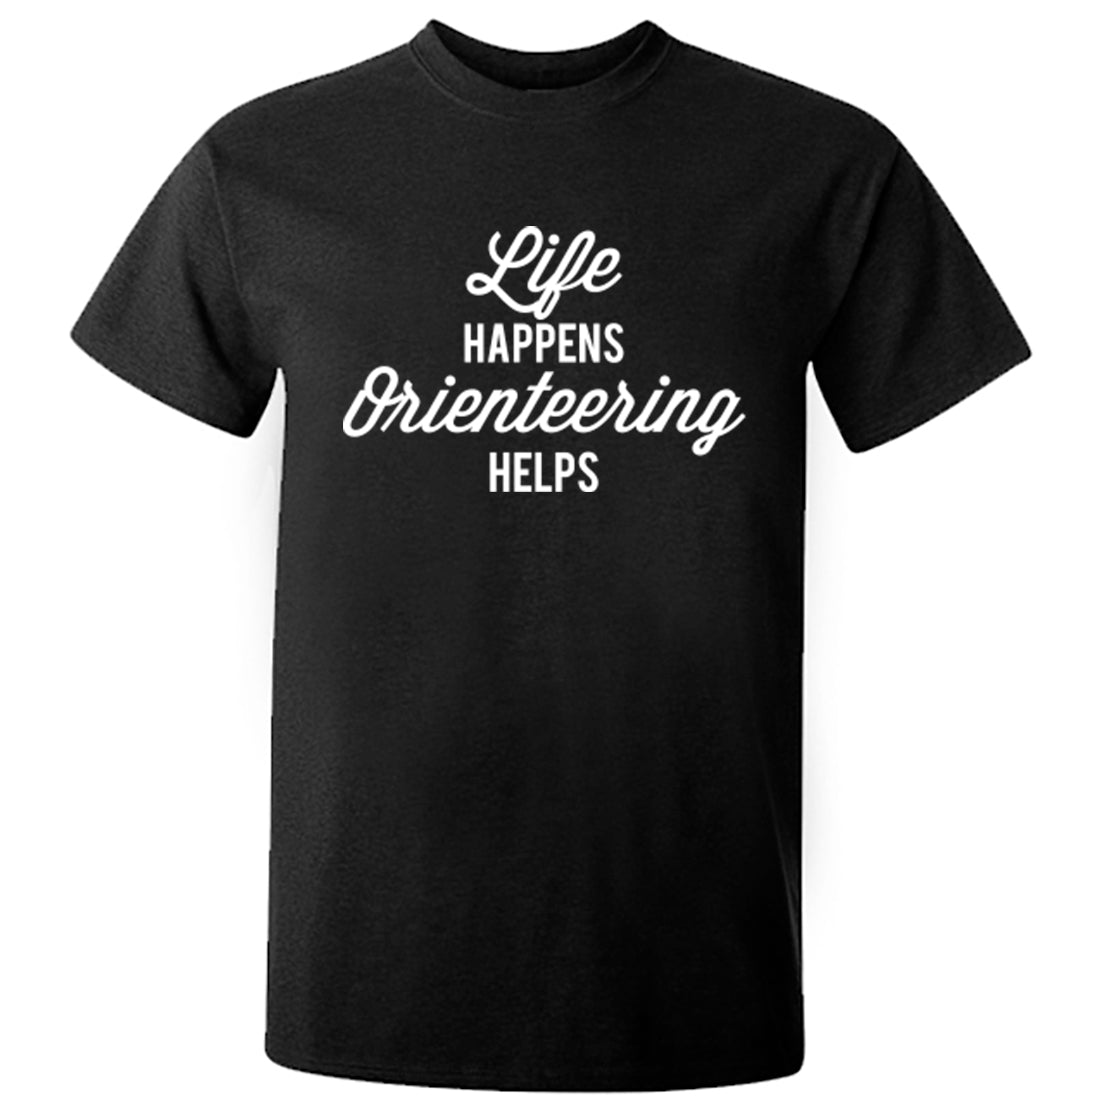 Life Happens Orienteering Helps Unisex Fit T-Shirt K2540 - Illustrated Identity Ltd.